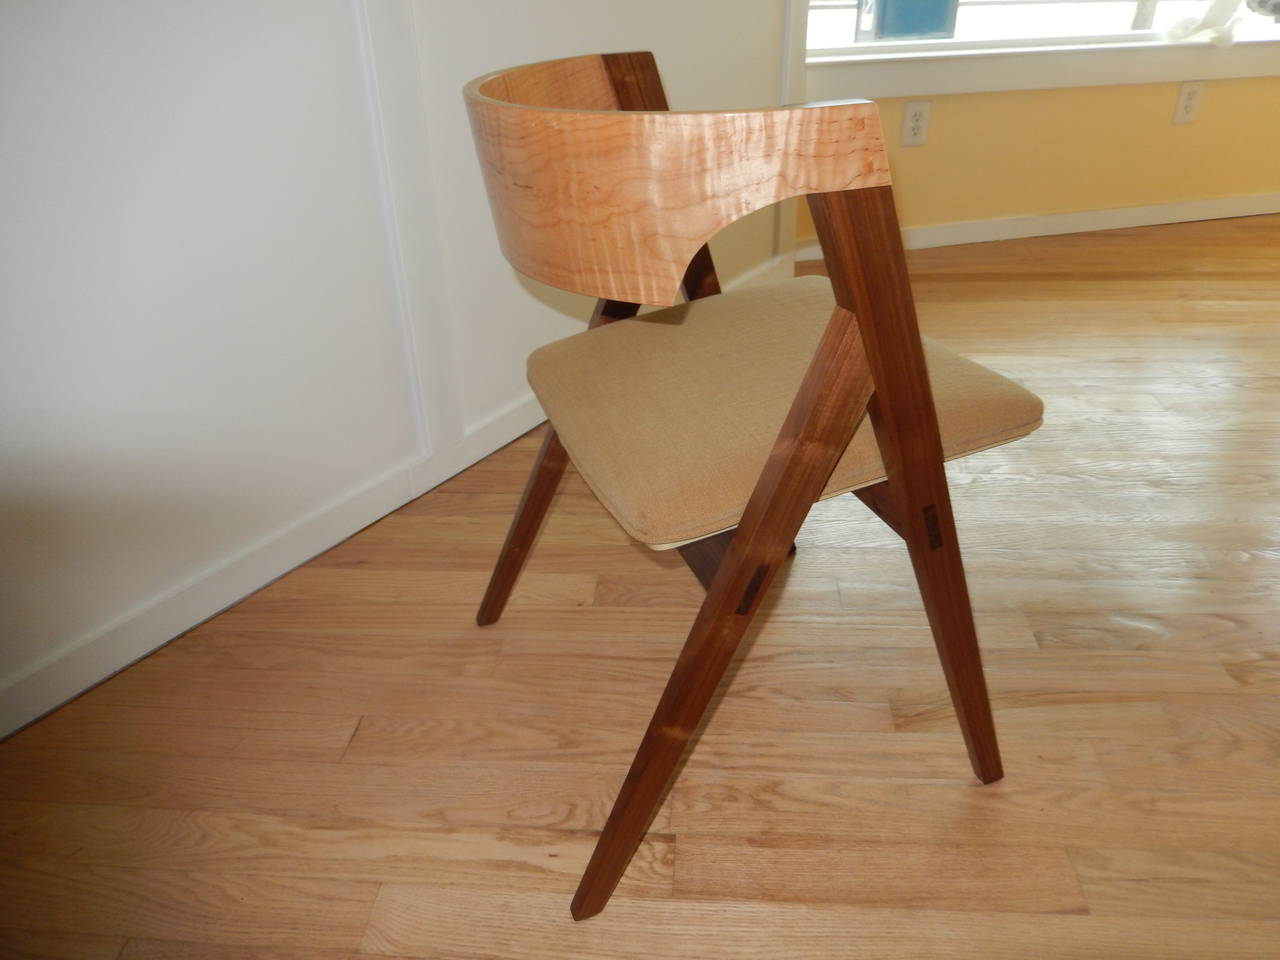 Hand-Crafted David N Ebner's Dining Room or Desk Chair For Sale